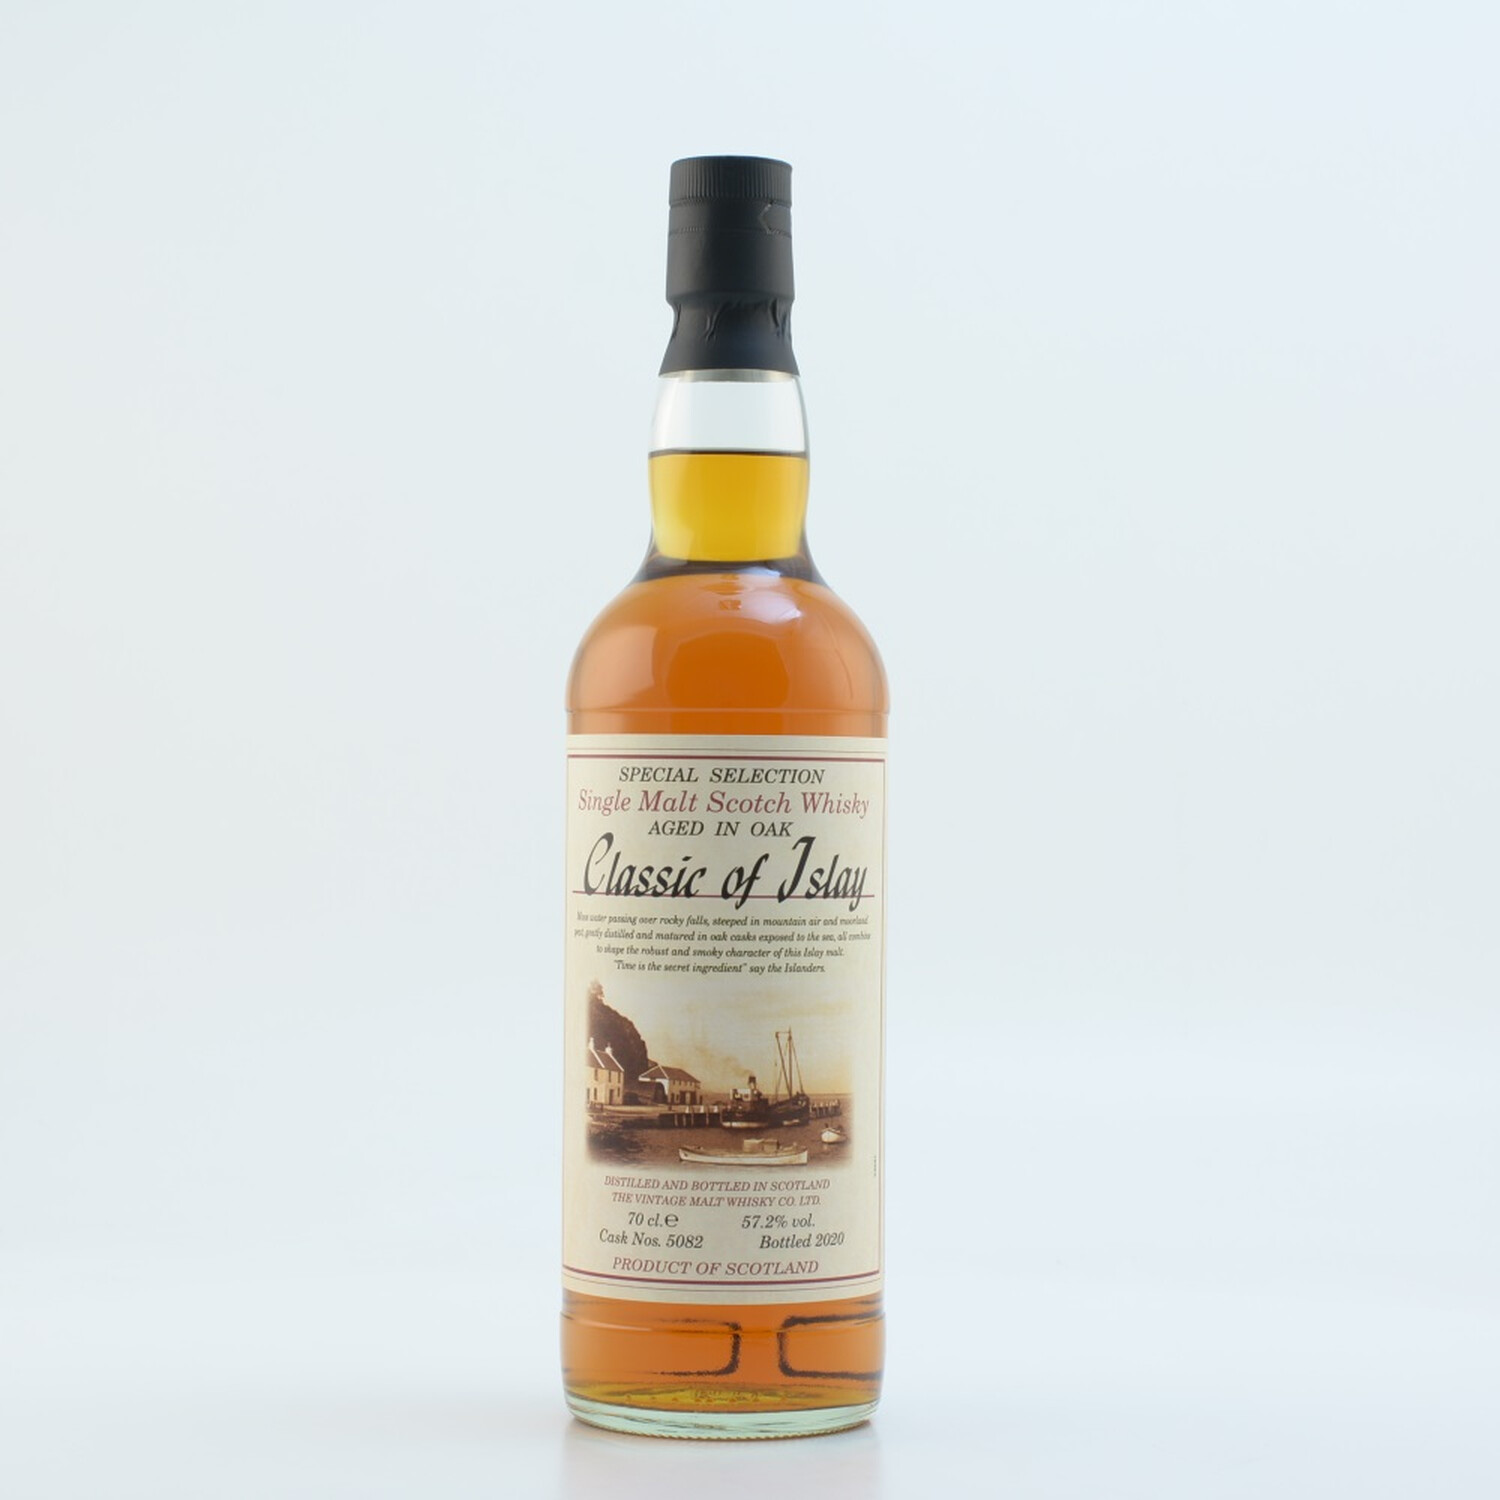 Classic of Islay Whisky ~56% 0,7l (64,14 € pro ...